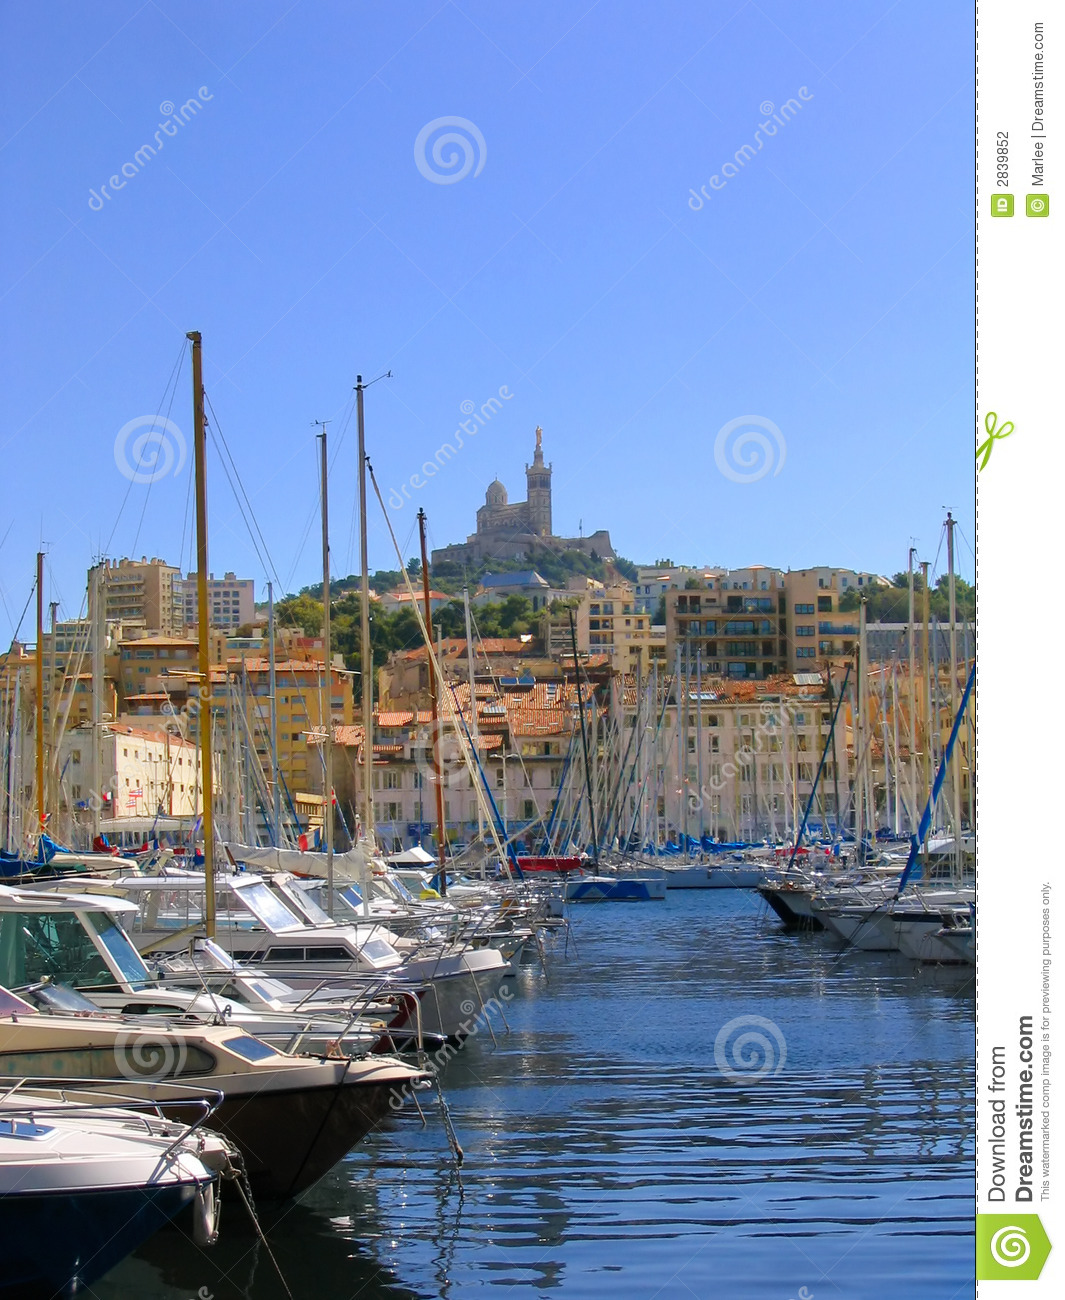 Vieux port marseille france stock photo image 2839852 - Starbucks marseille vieux port ...